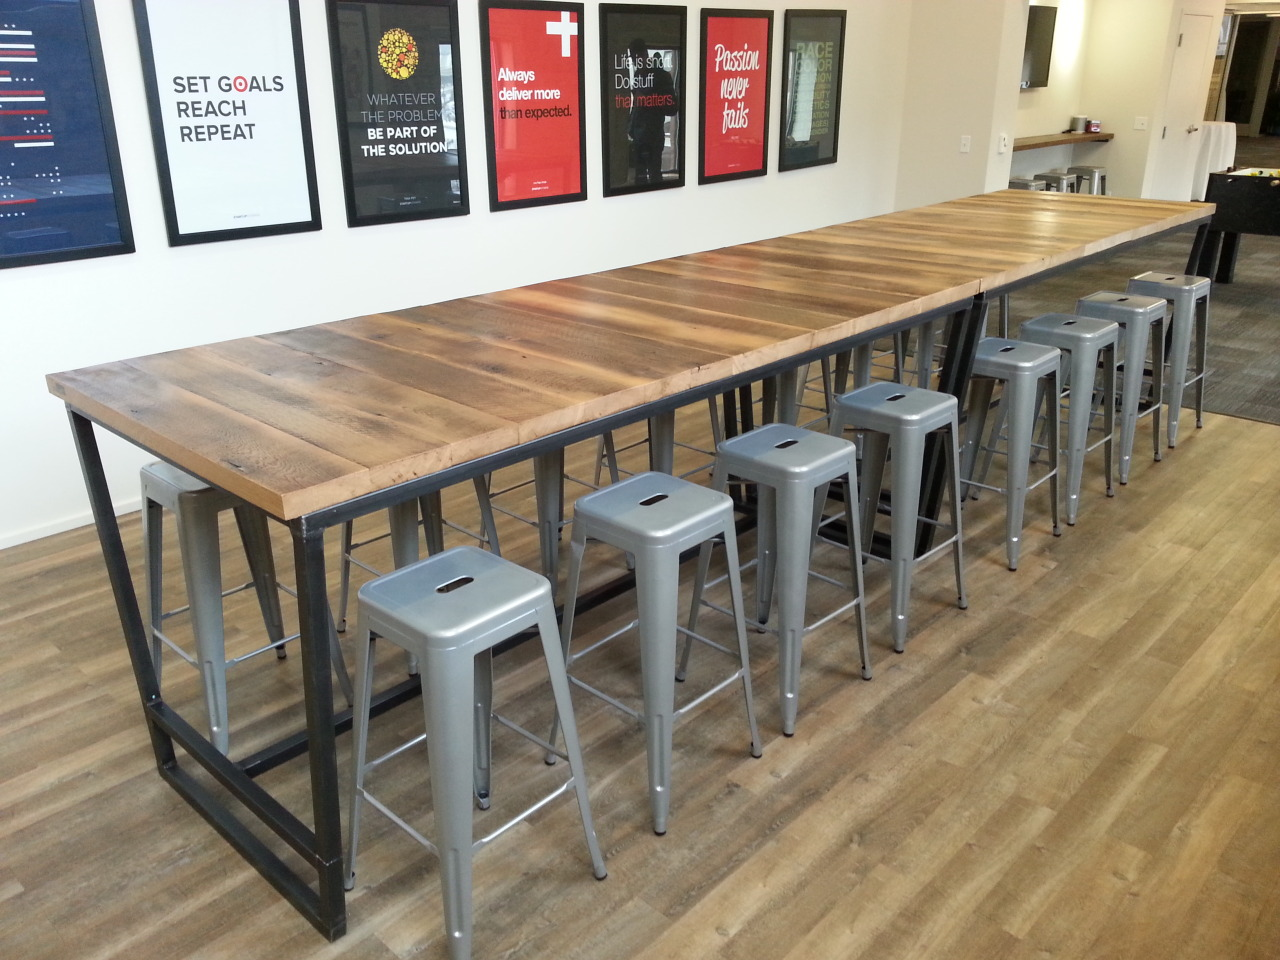 Restaurant Tables Canada Re Dwell Custom Crafted Furniture Conference Room